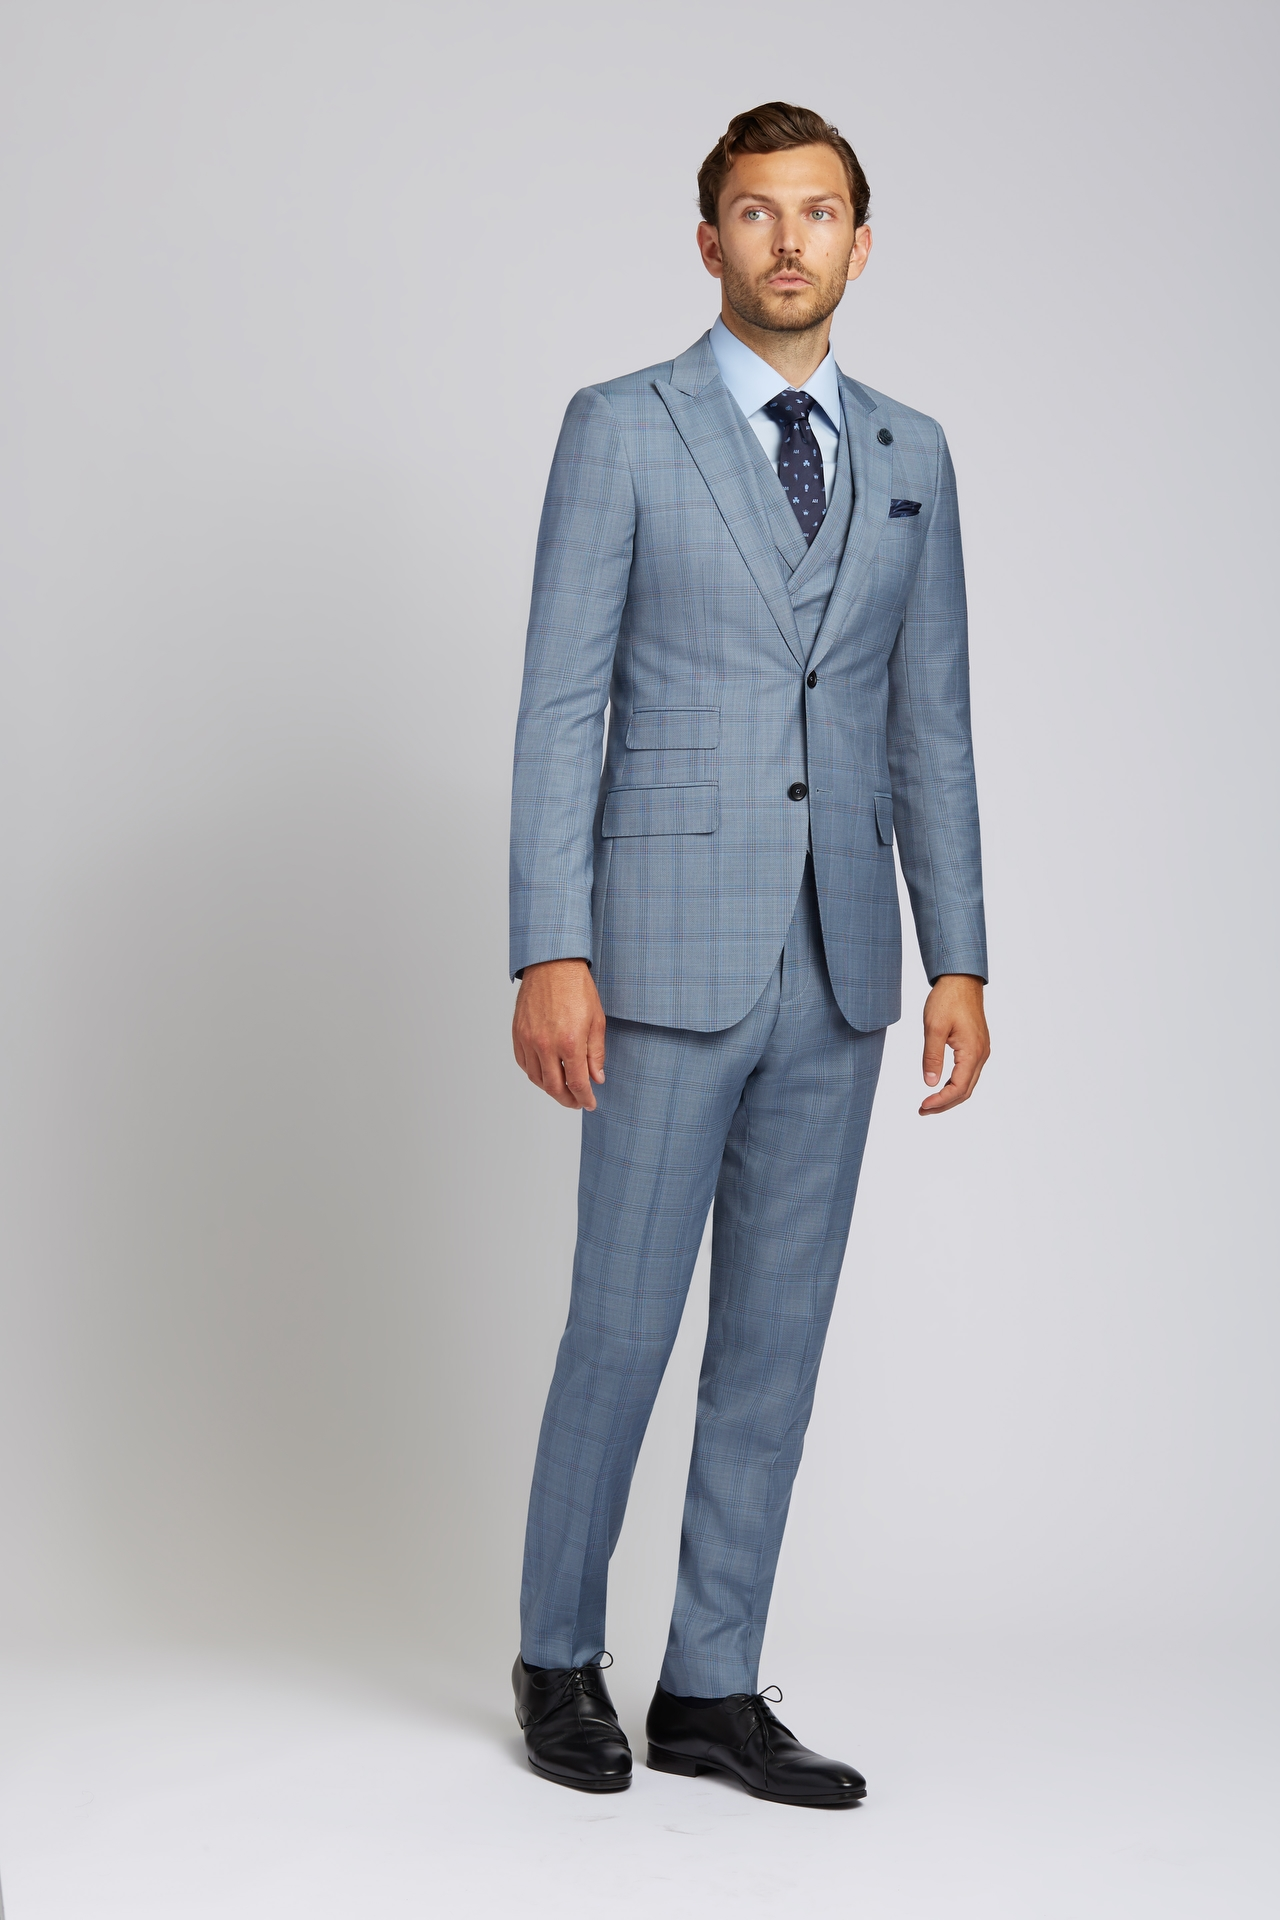 Slim-fit Super 130s Wool 3-Piece Suit in Steel Blue Glen Plaid